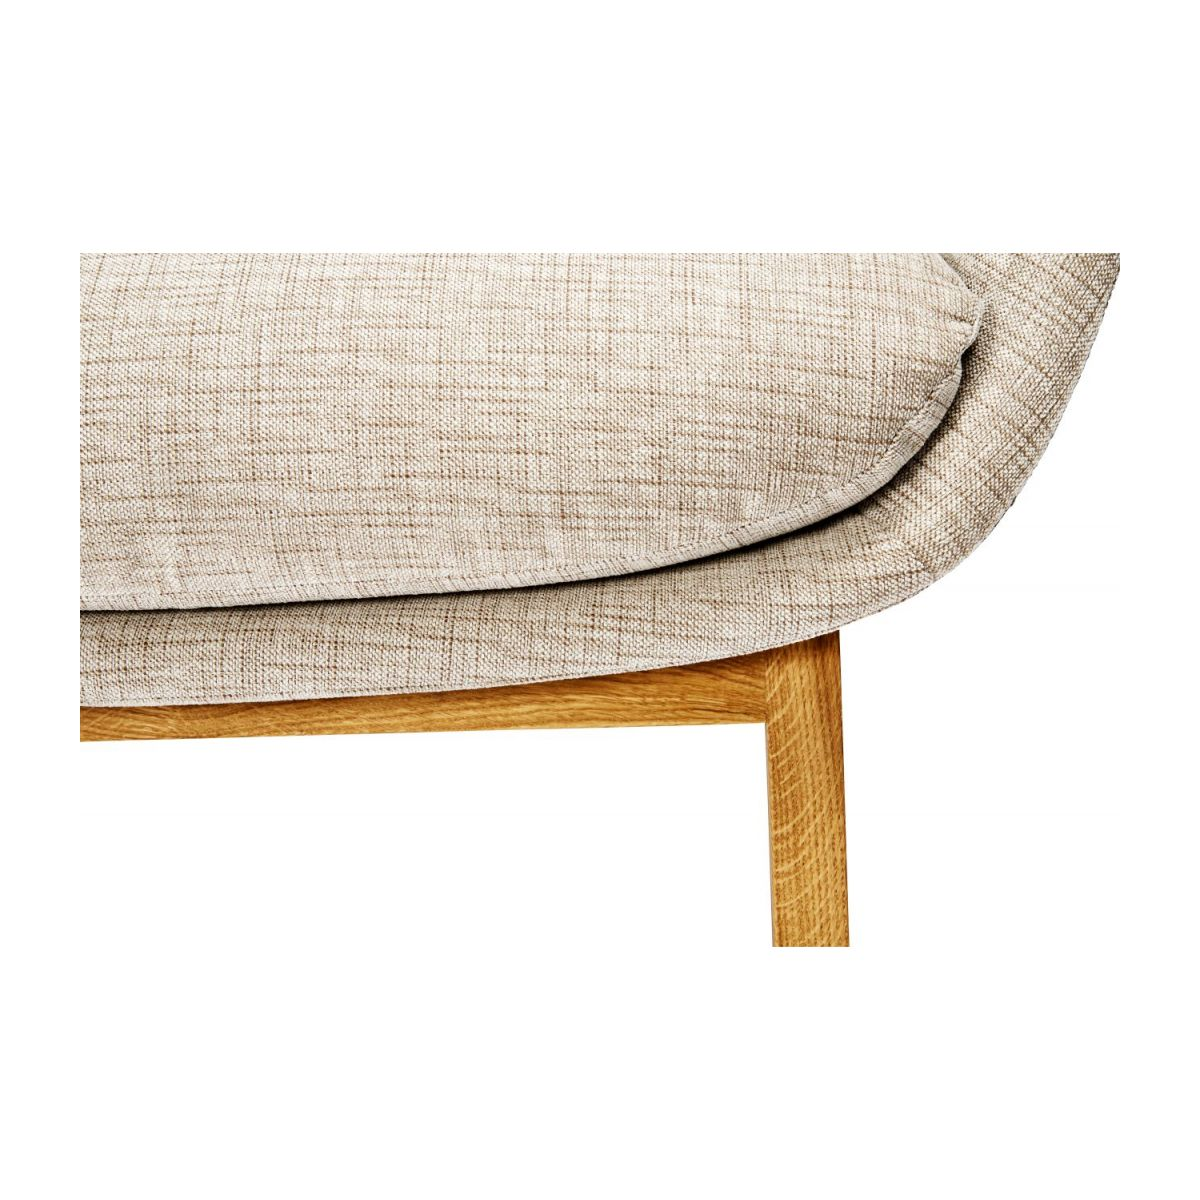 Armchair in Ancio fabric, nature with oak legs n°9